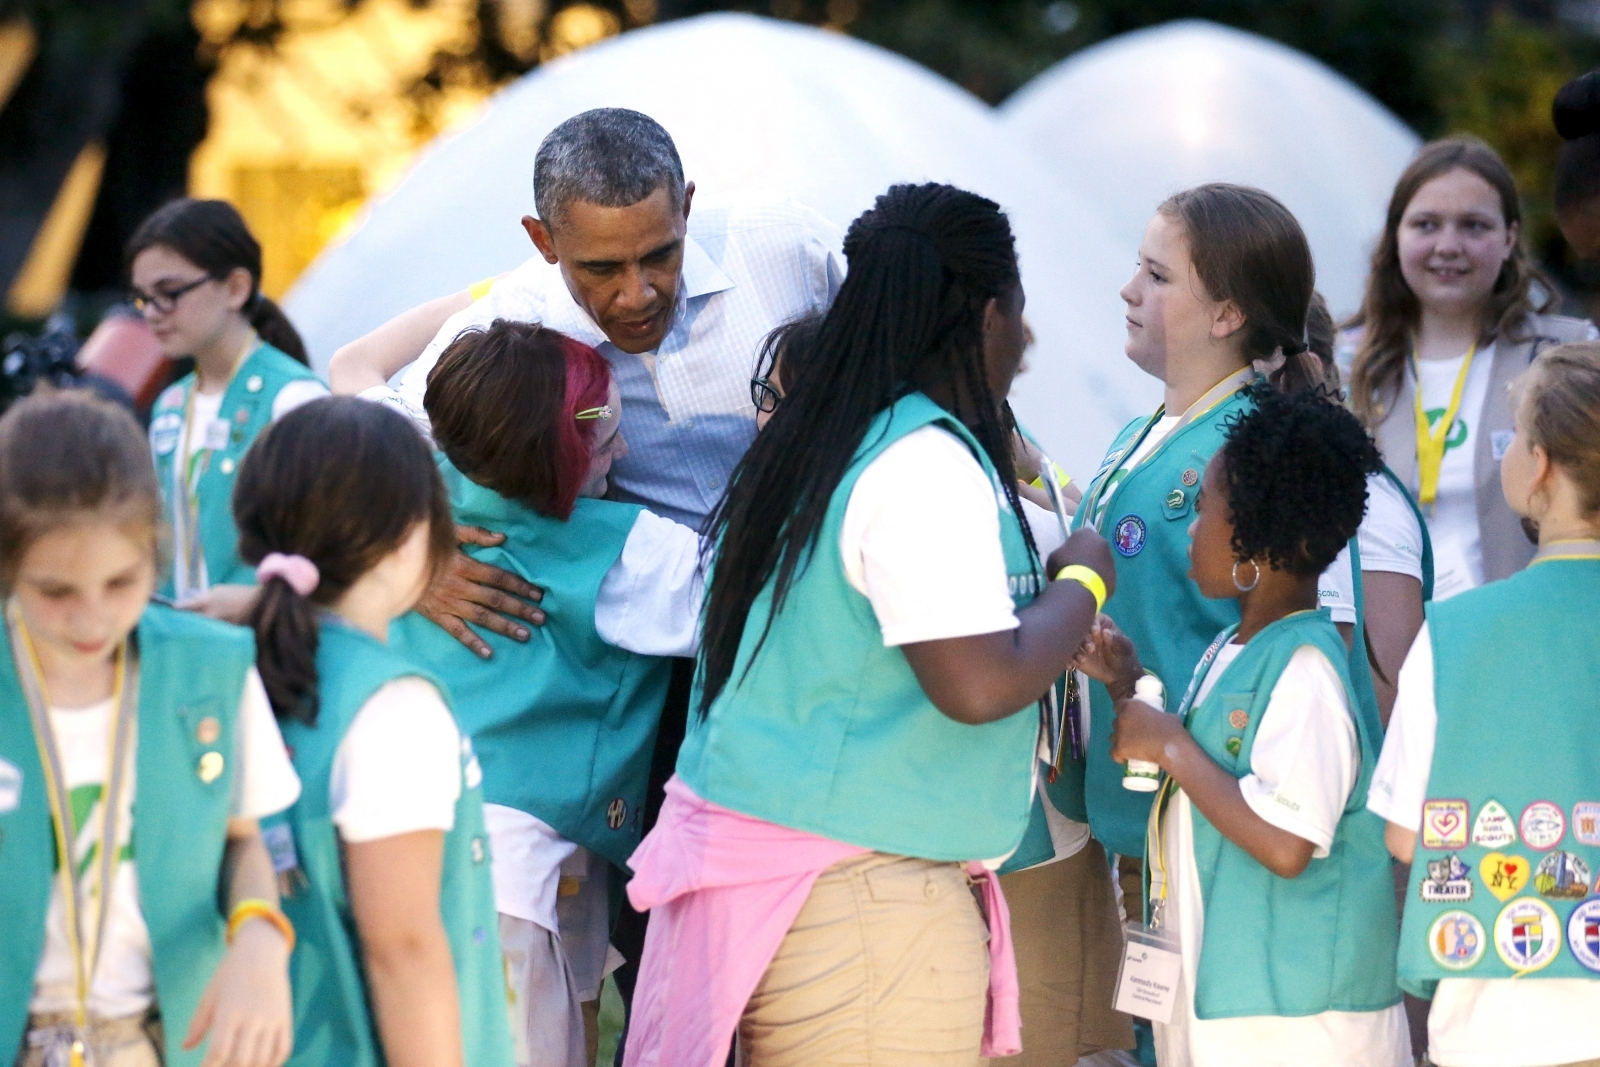 Dont Make Children Hug, Girl Scouts Tells Parents